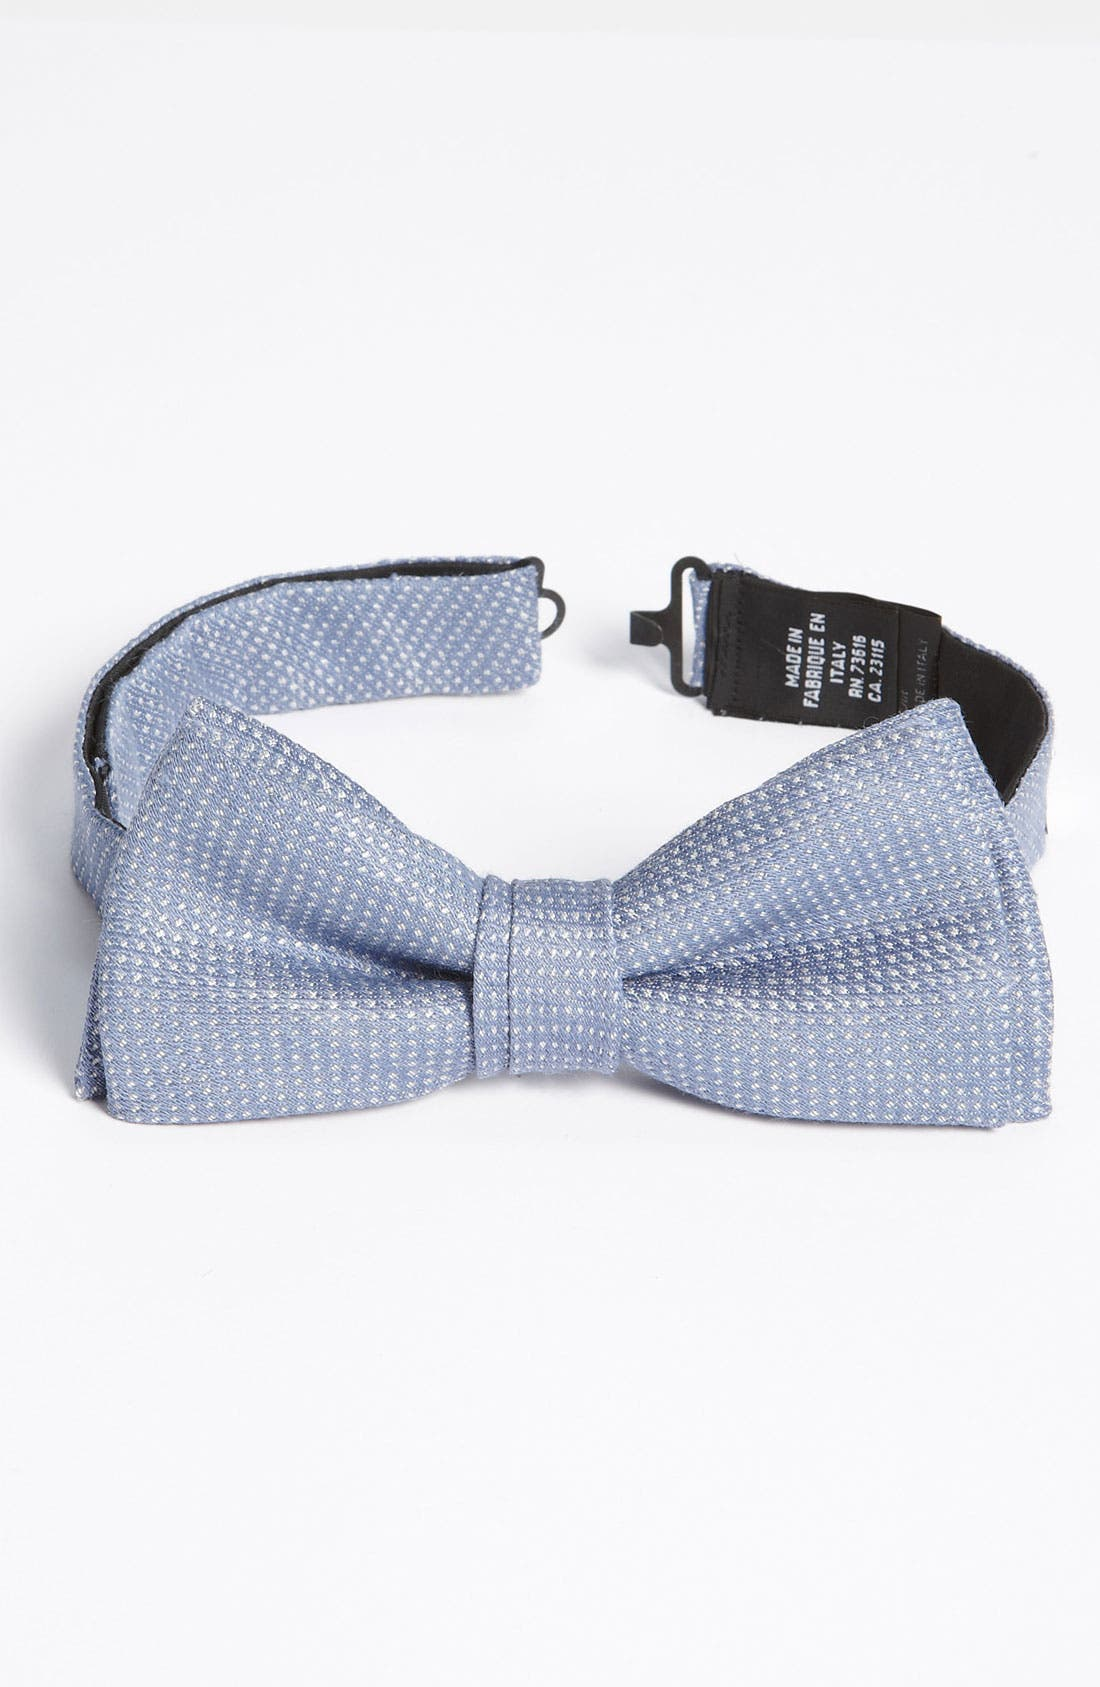 Main Image - BOSS Black Bow Tie